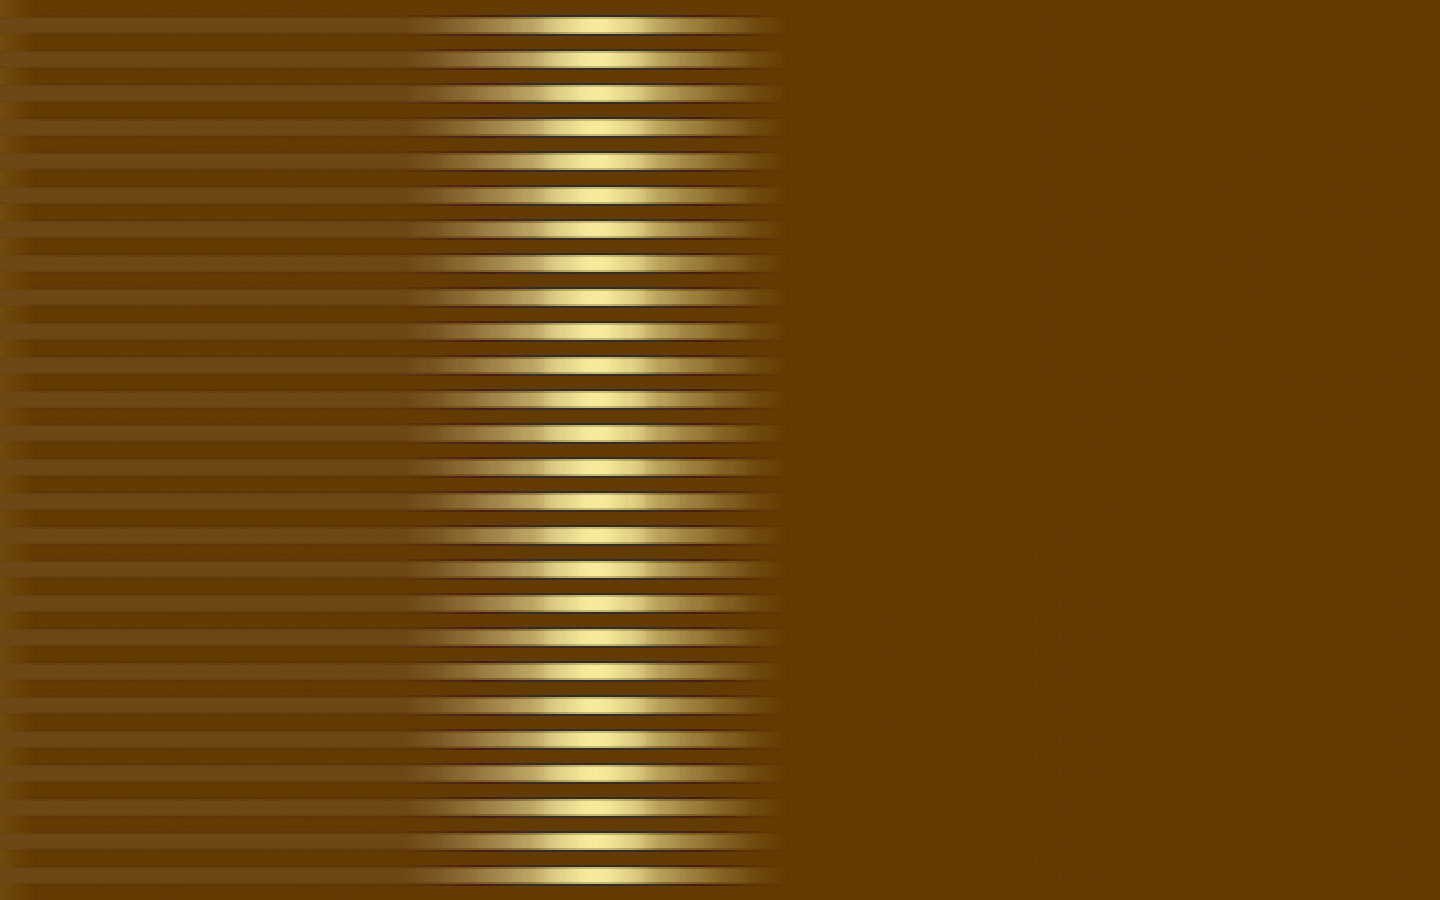 Golden Design Wallpaper : Sh yn design stripe wallpaper golden line